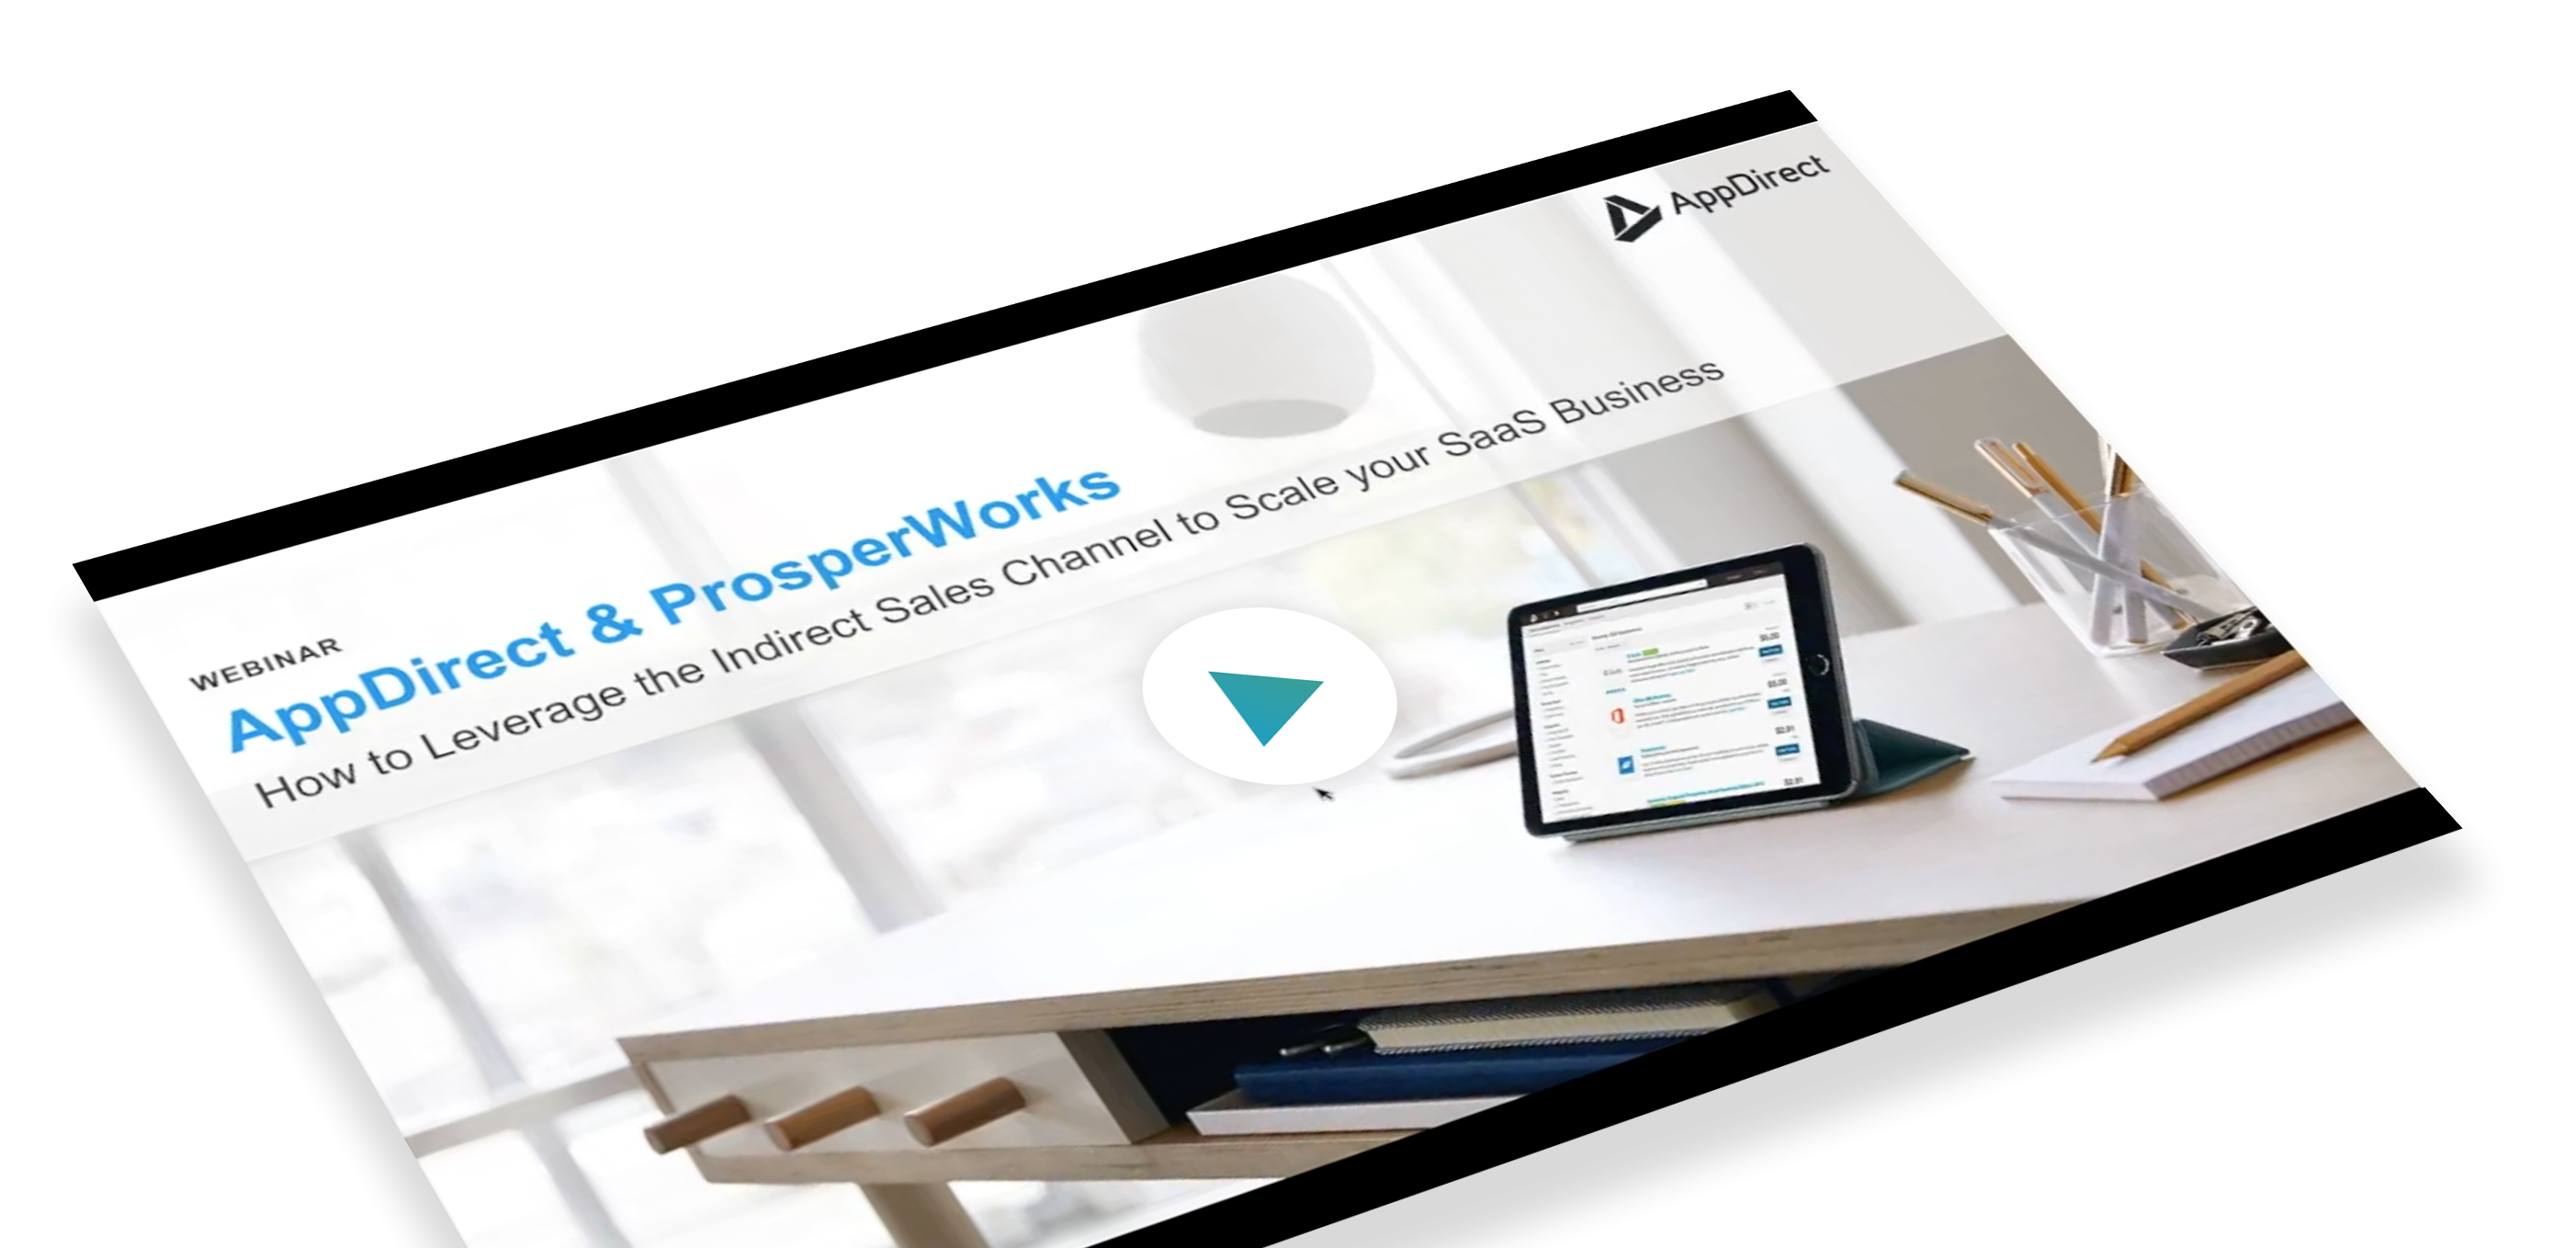 AppDirect & ProsperWorks: How to leverage the indirect sales channel to scale your SaaS business